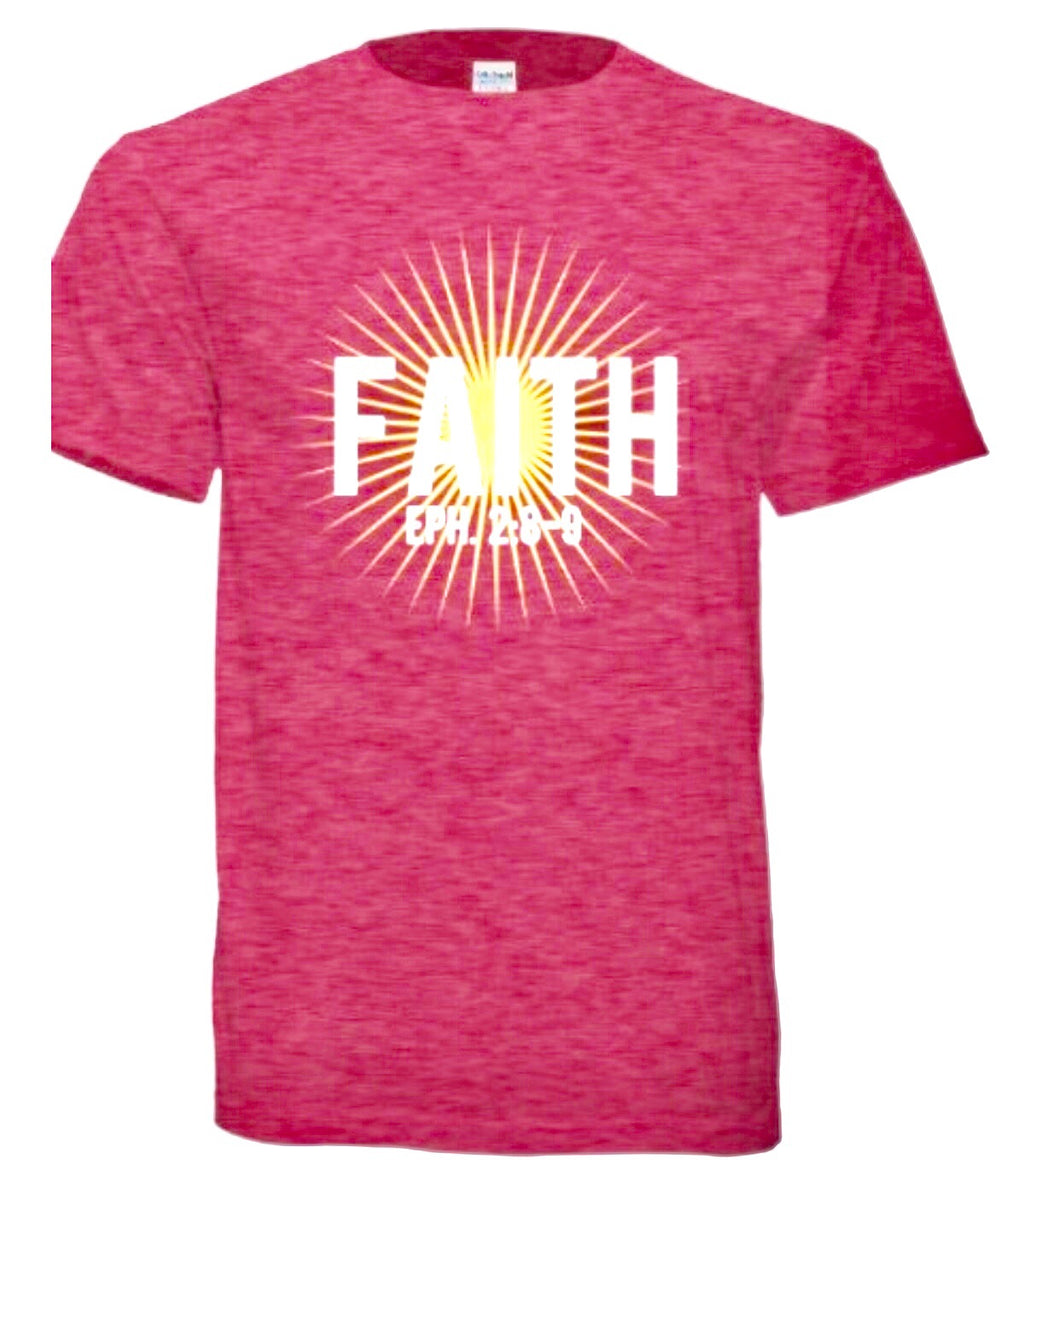 *FAITH T-shirt